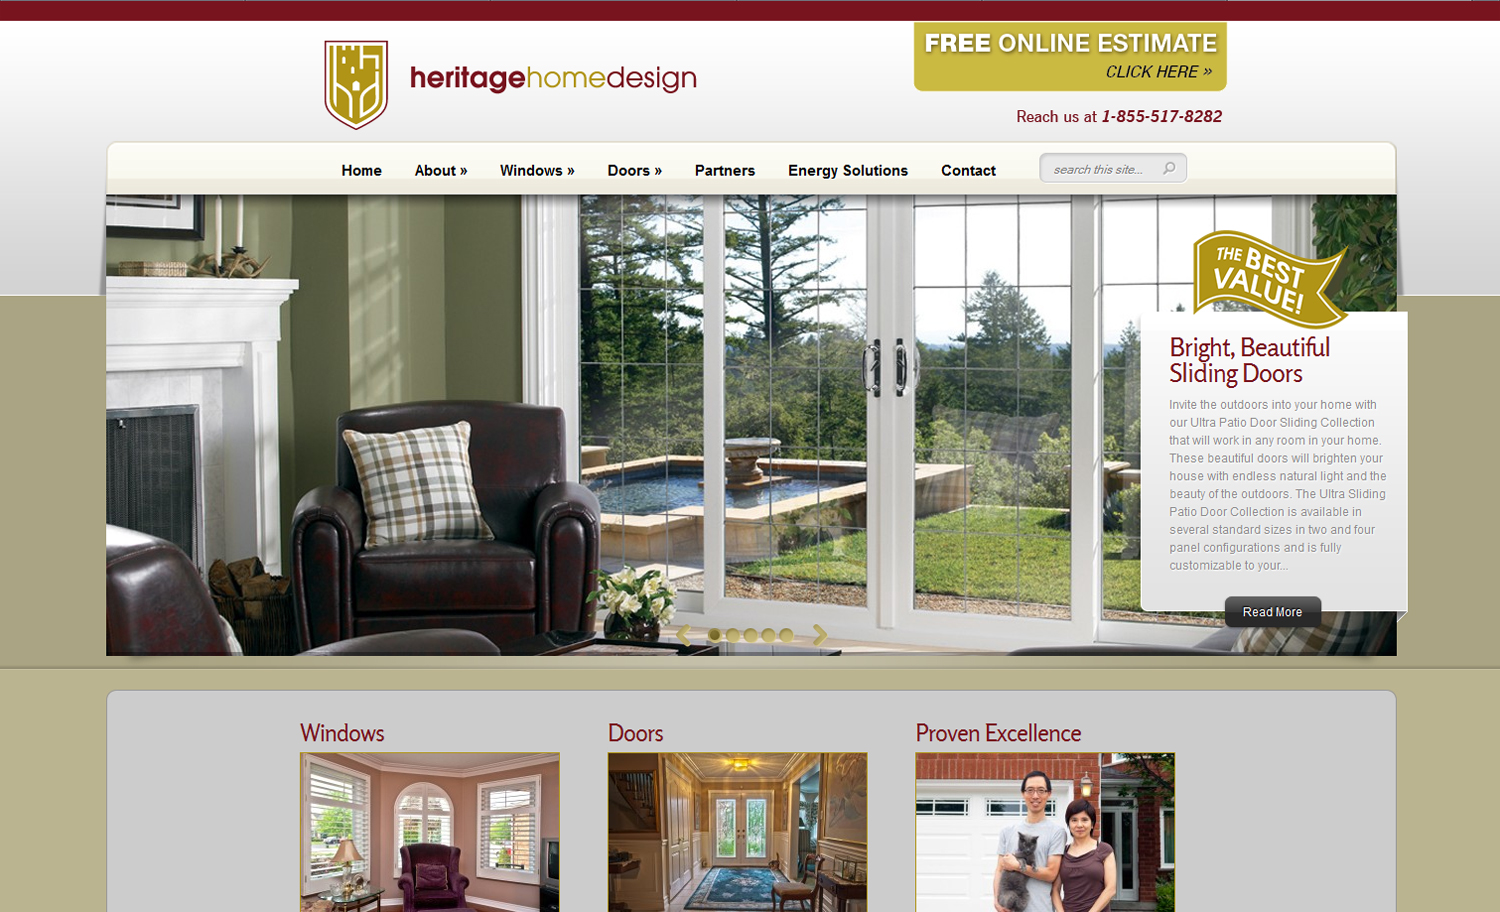 Introducing Heritage Home Design